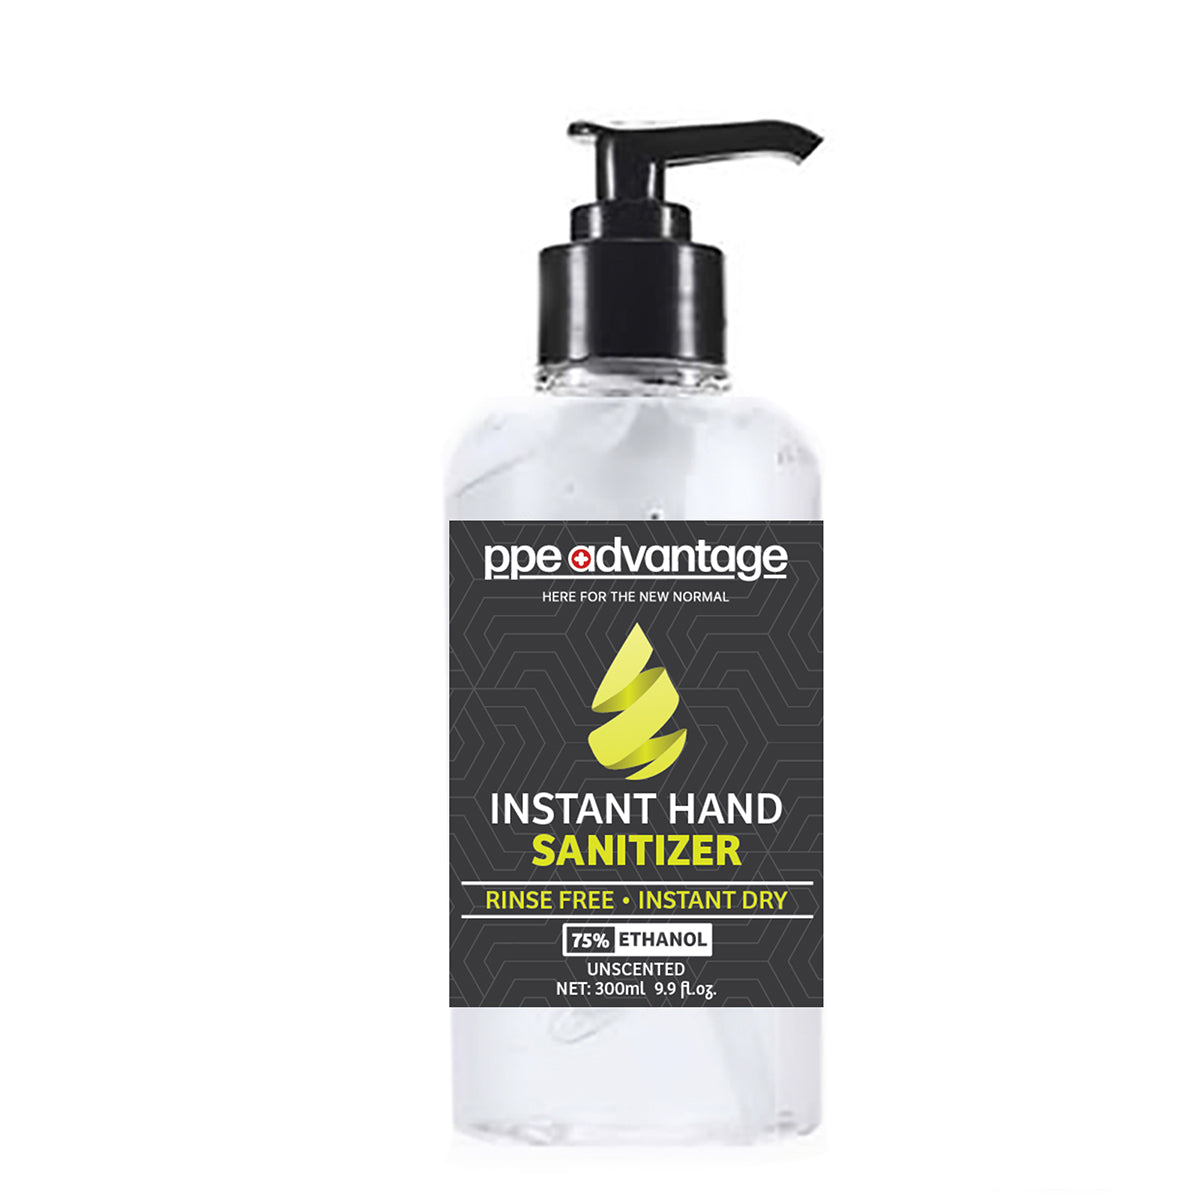 3021 PPE Advantage Instant Hand Sanitizer (10oz) - PPEA Branded Label | PPE Advantate powered by dS Product Hunters